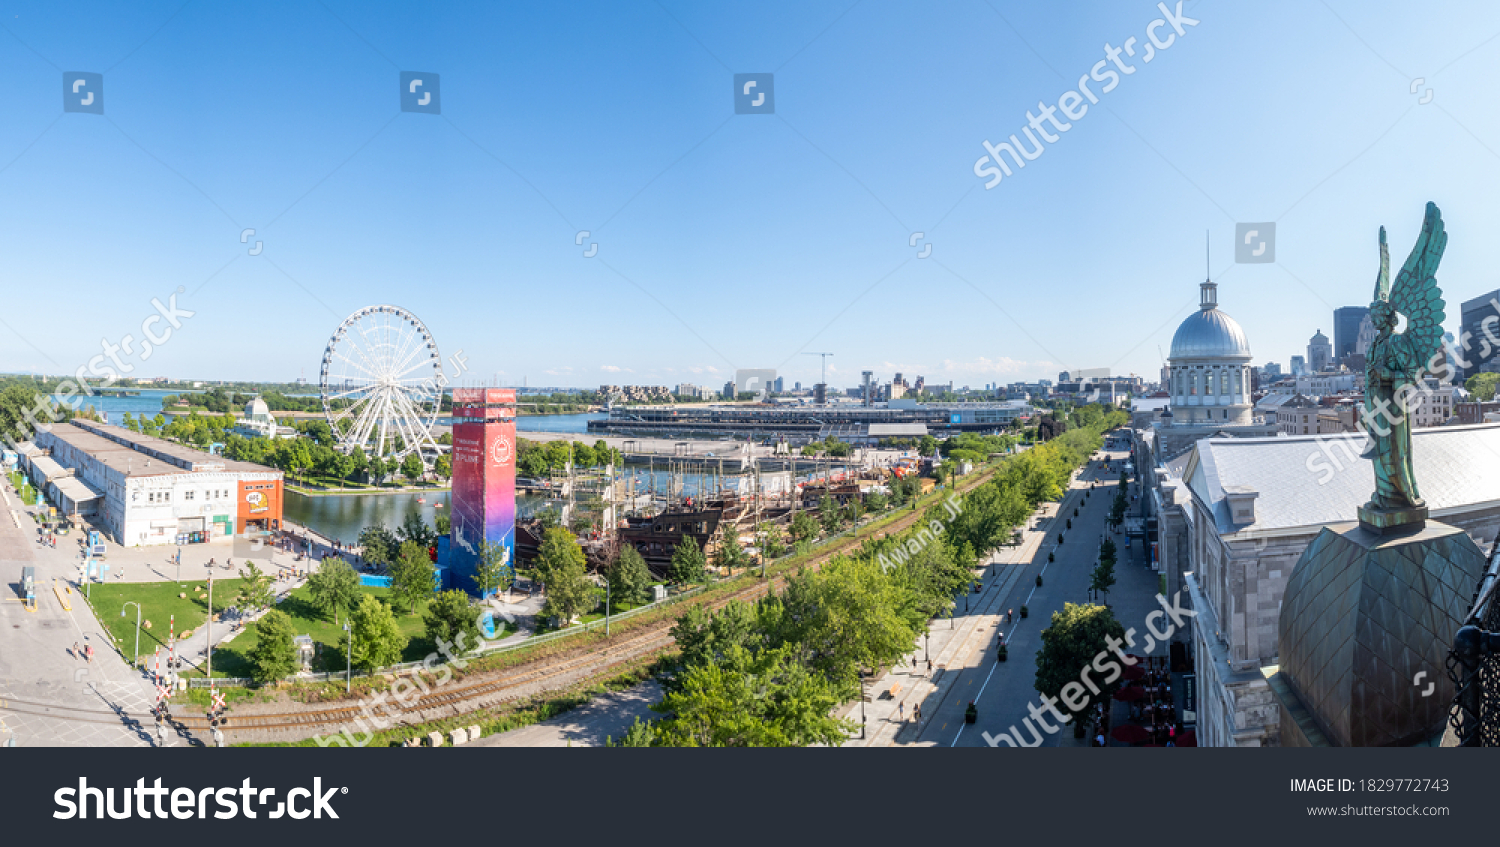 stock-photo-montreal-canada-august-panor